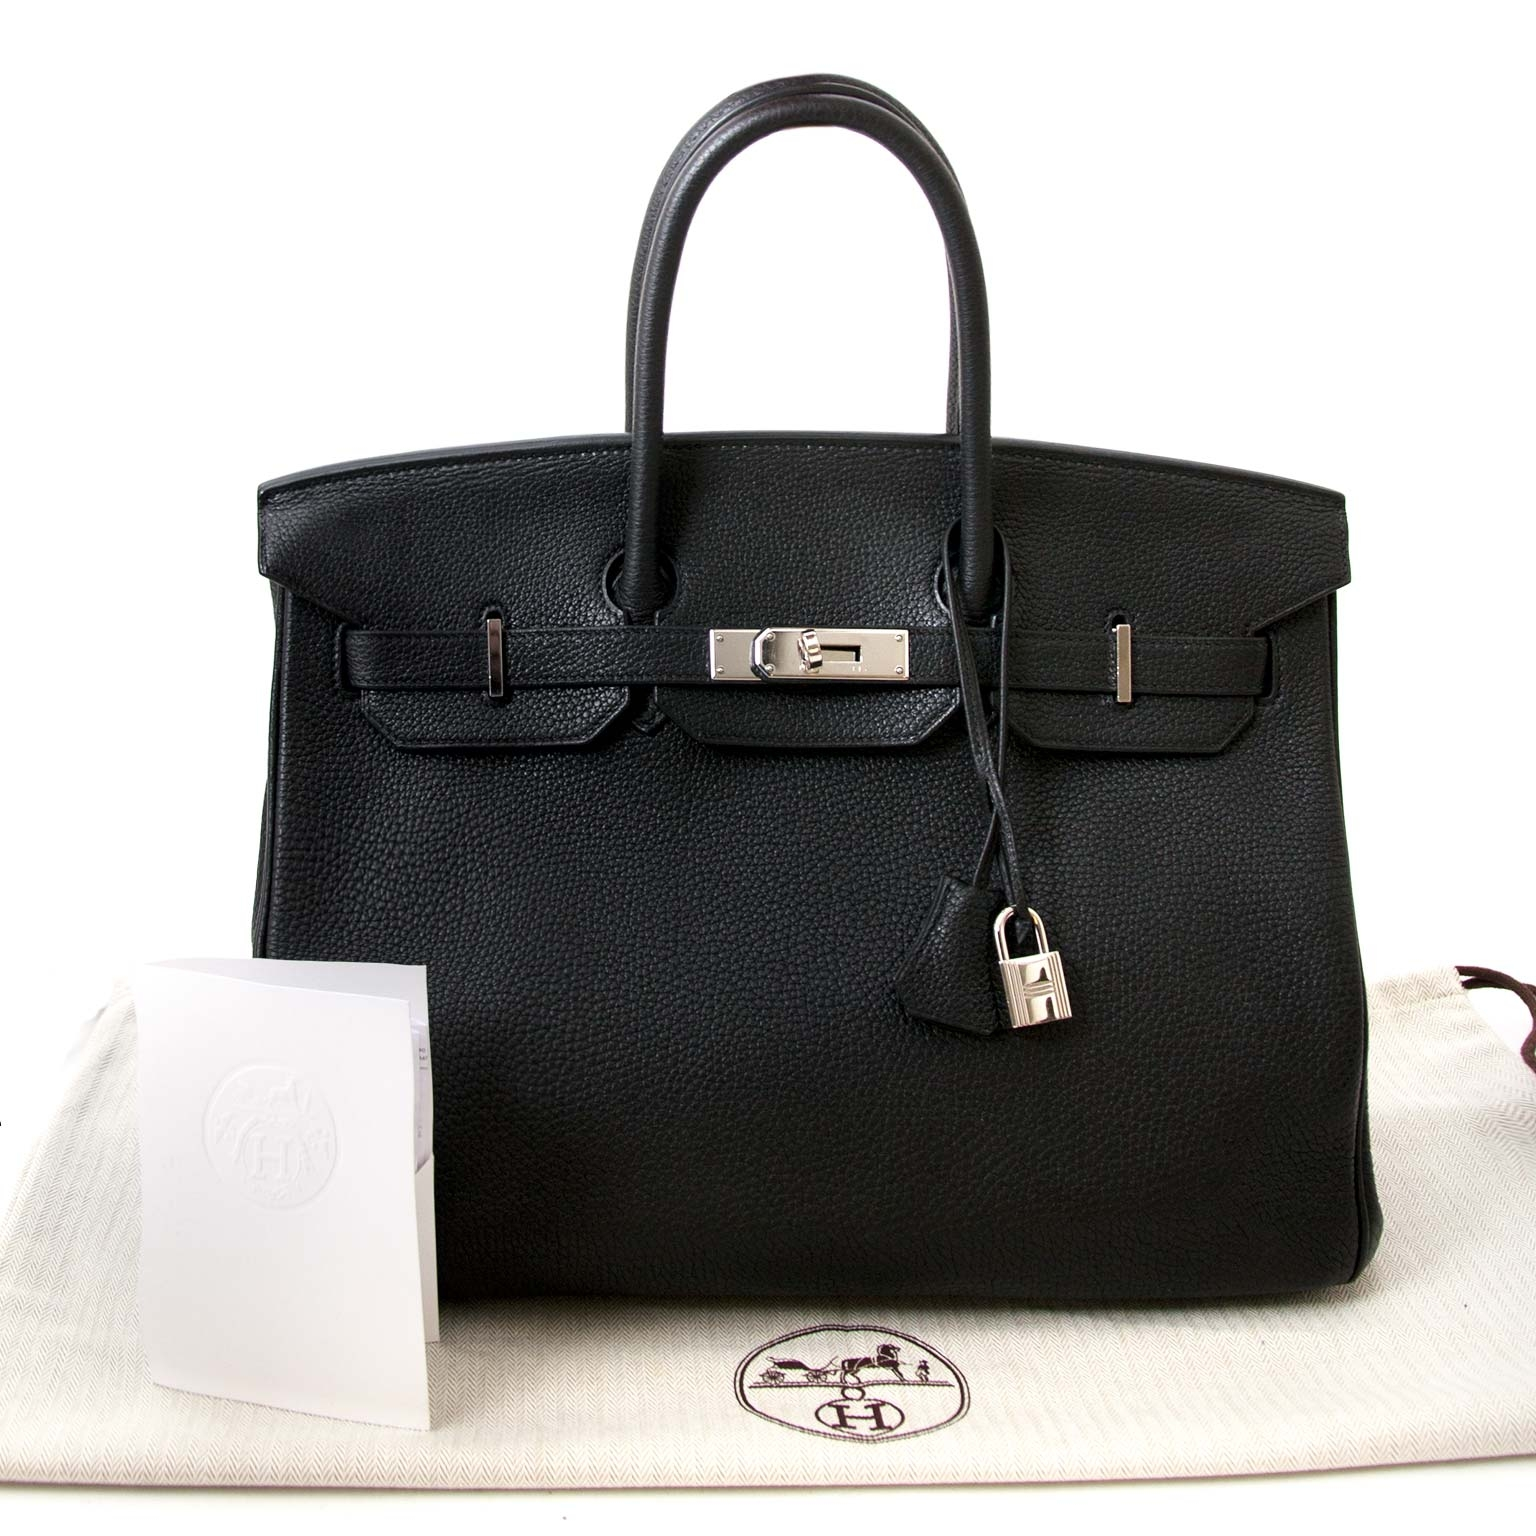 0ccb0103dcbb Labellov Beloved Birkin - MAGAZINE ○ Buy and Sell Authentic Luxury